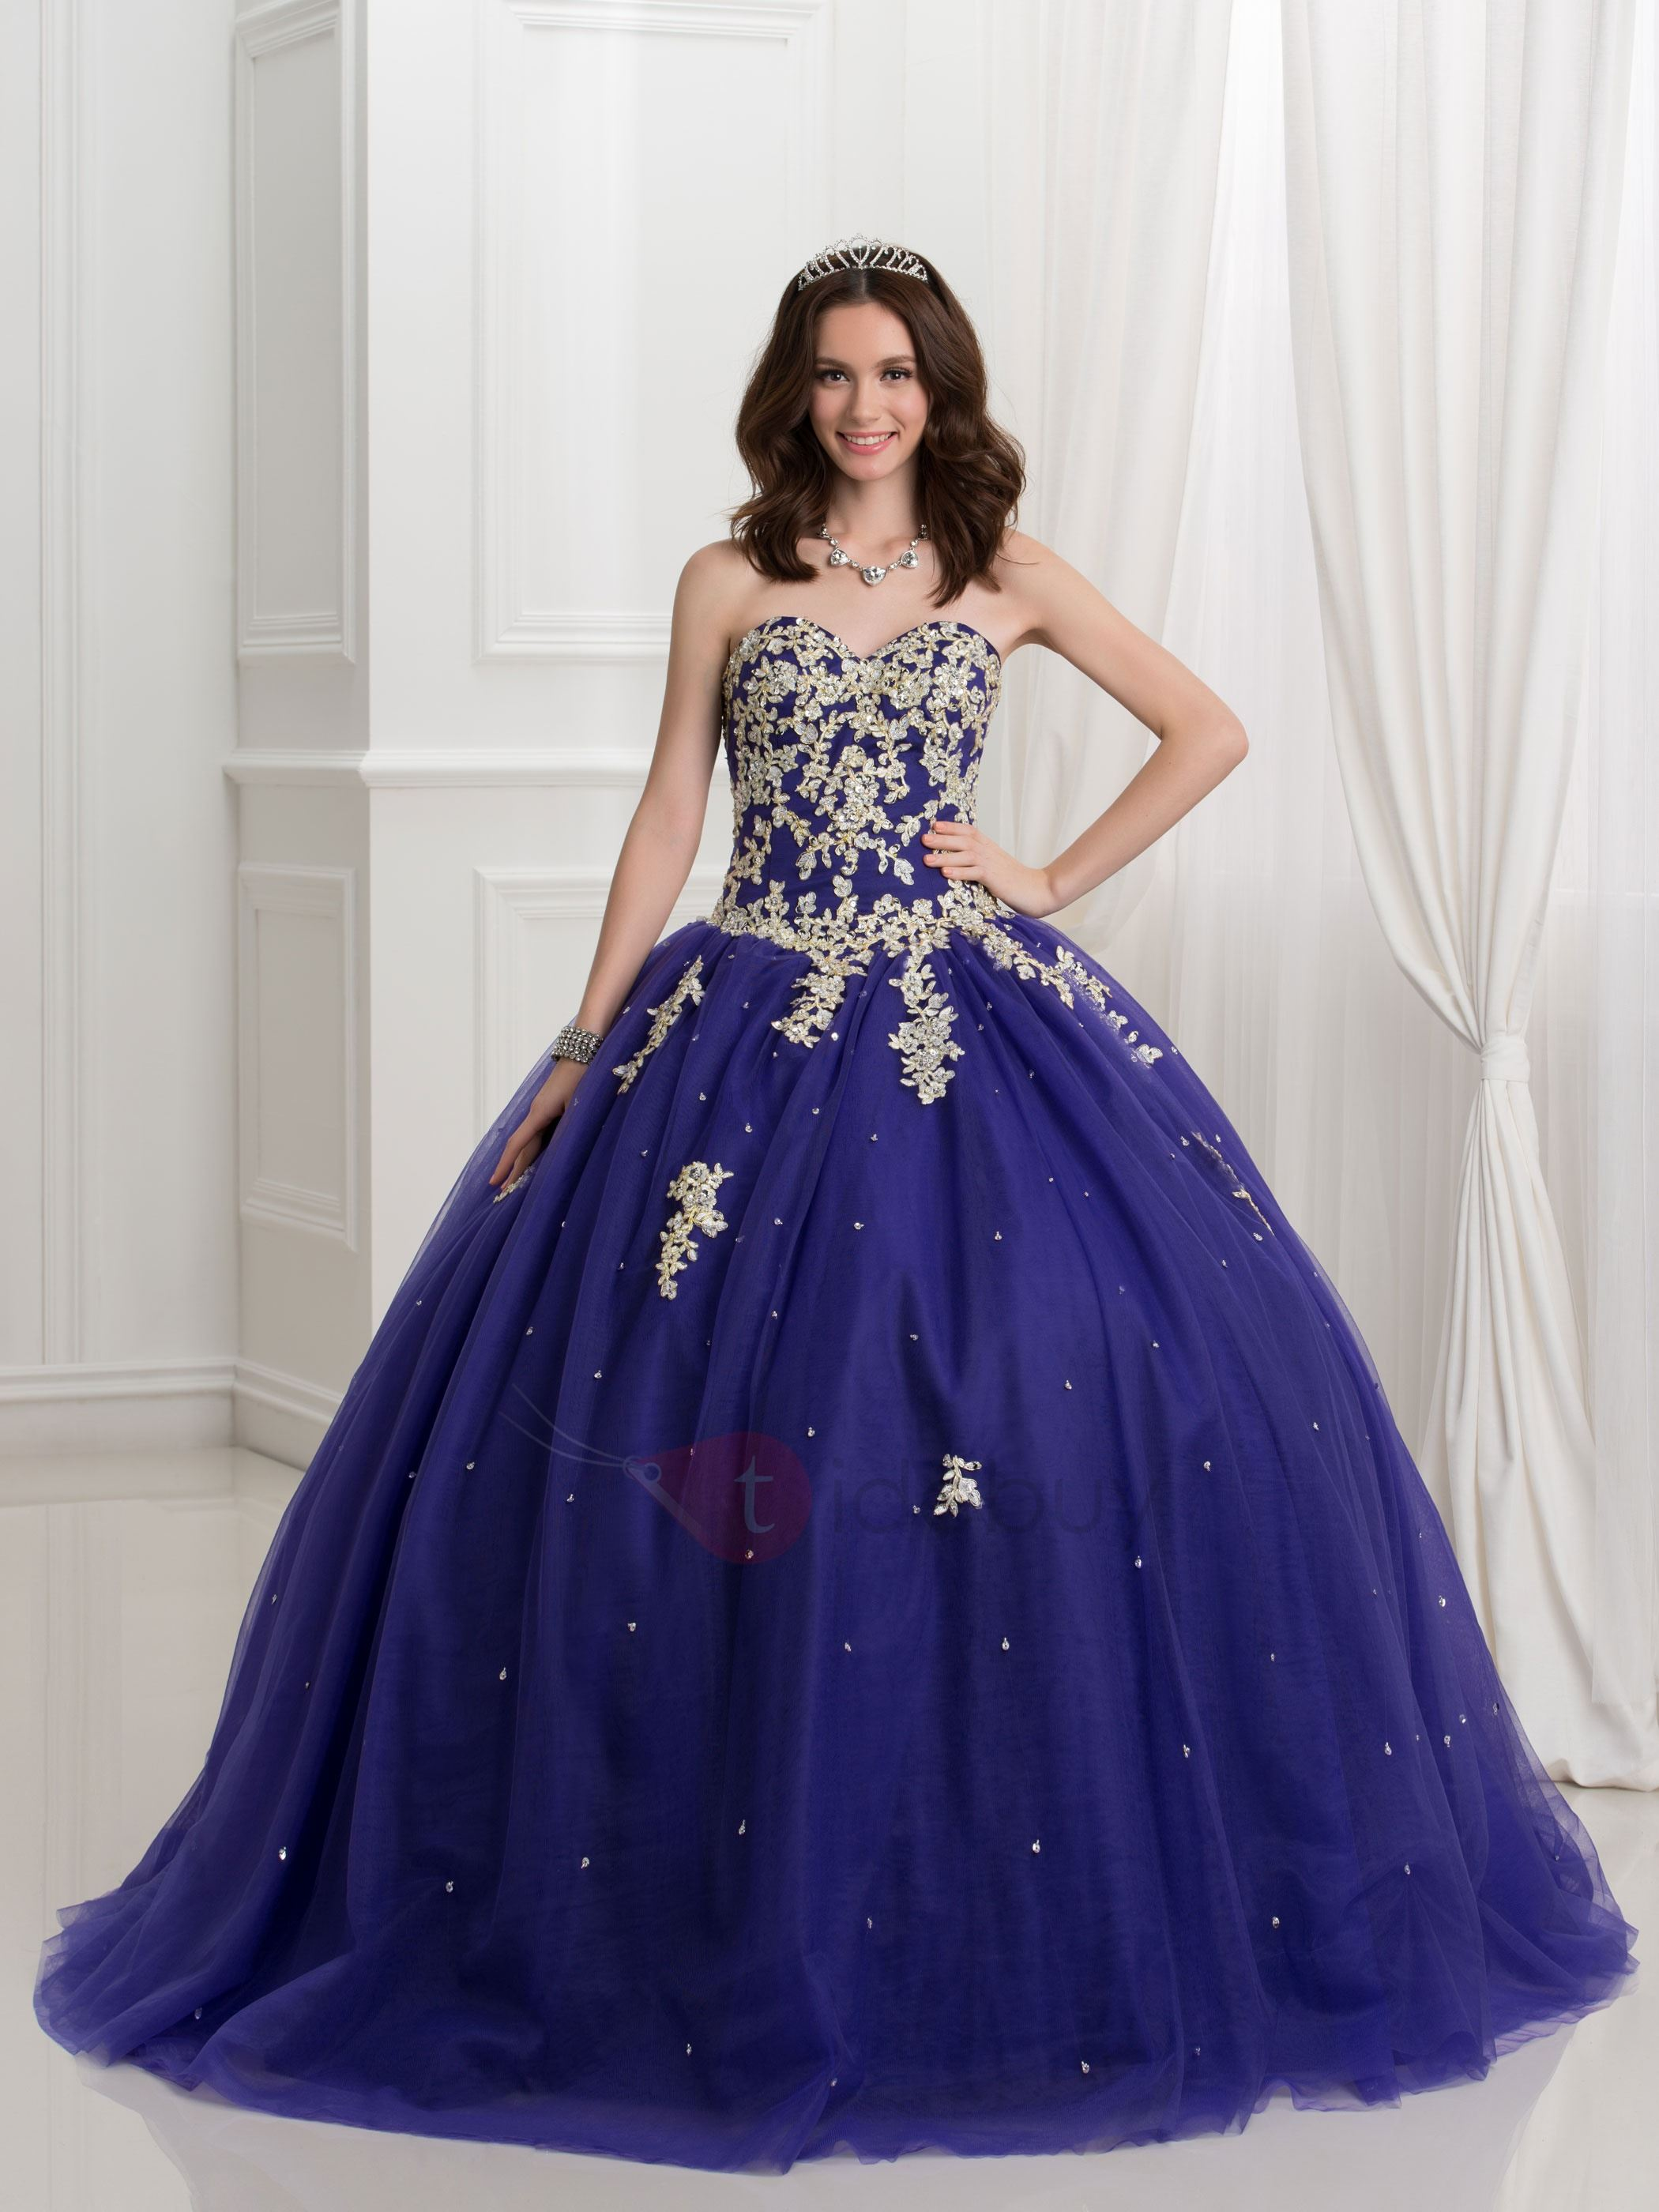 9b0b87d5894 Affordable New Styles Quinceanera Dresses Online for Sale   Tidebuy.com